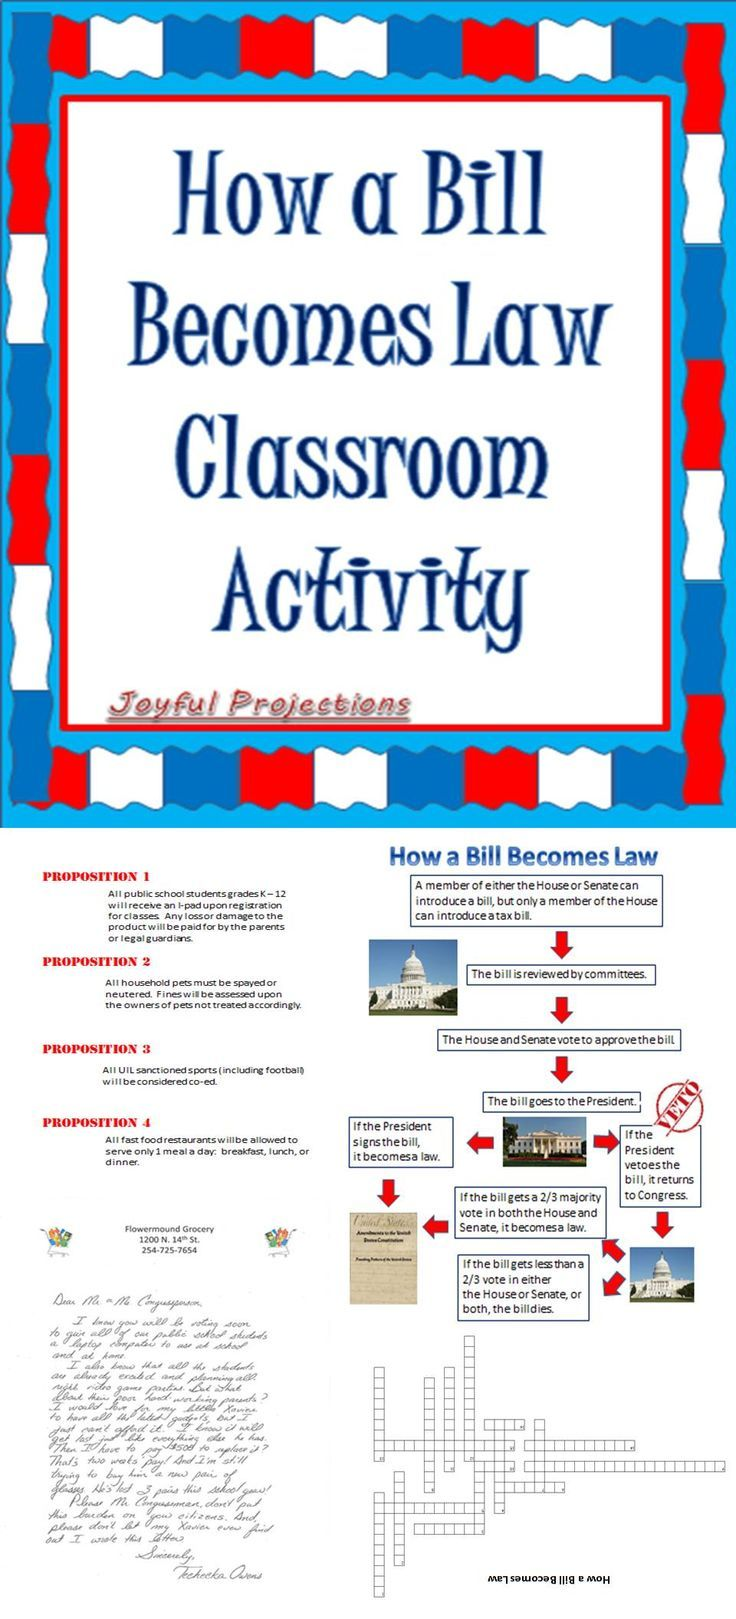 Best Ideas About Social Quiz On Pinterest Geography Quiz - States and capitals of the usa quiz